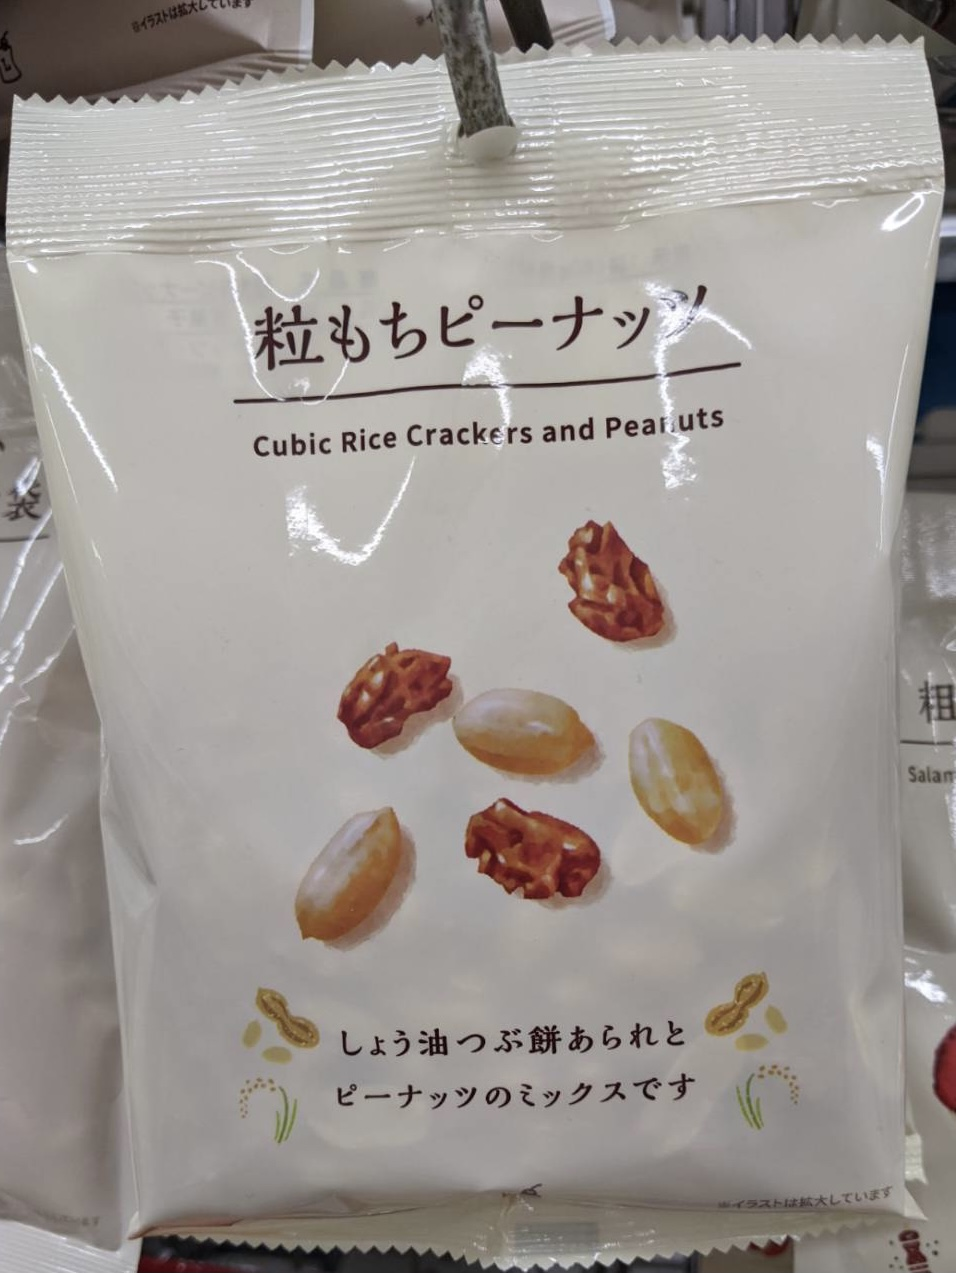 Lawson Cubic Rice Crackers and Peanuts